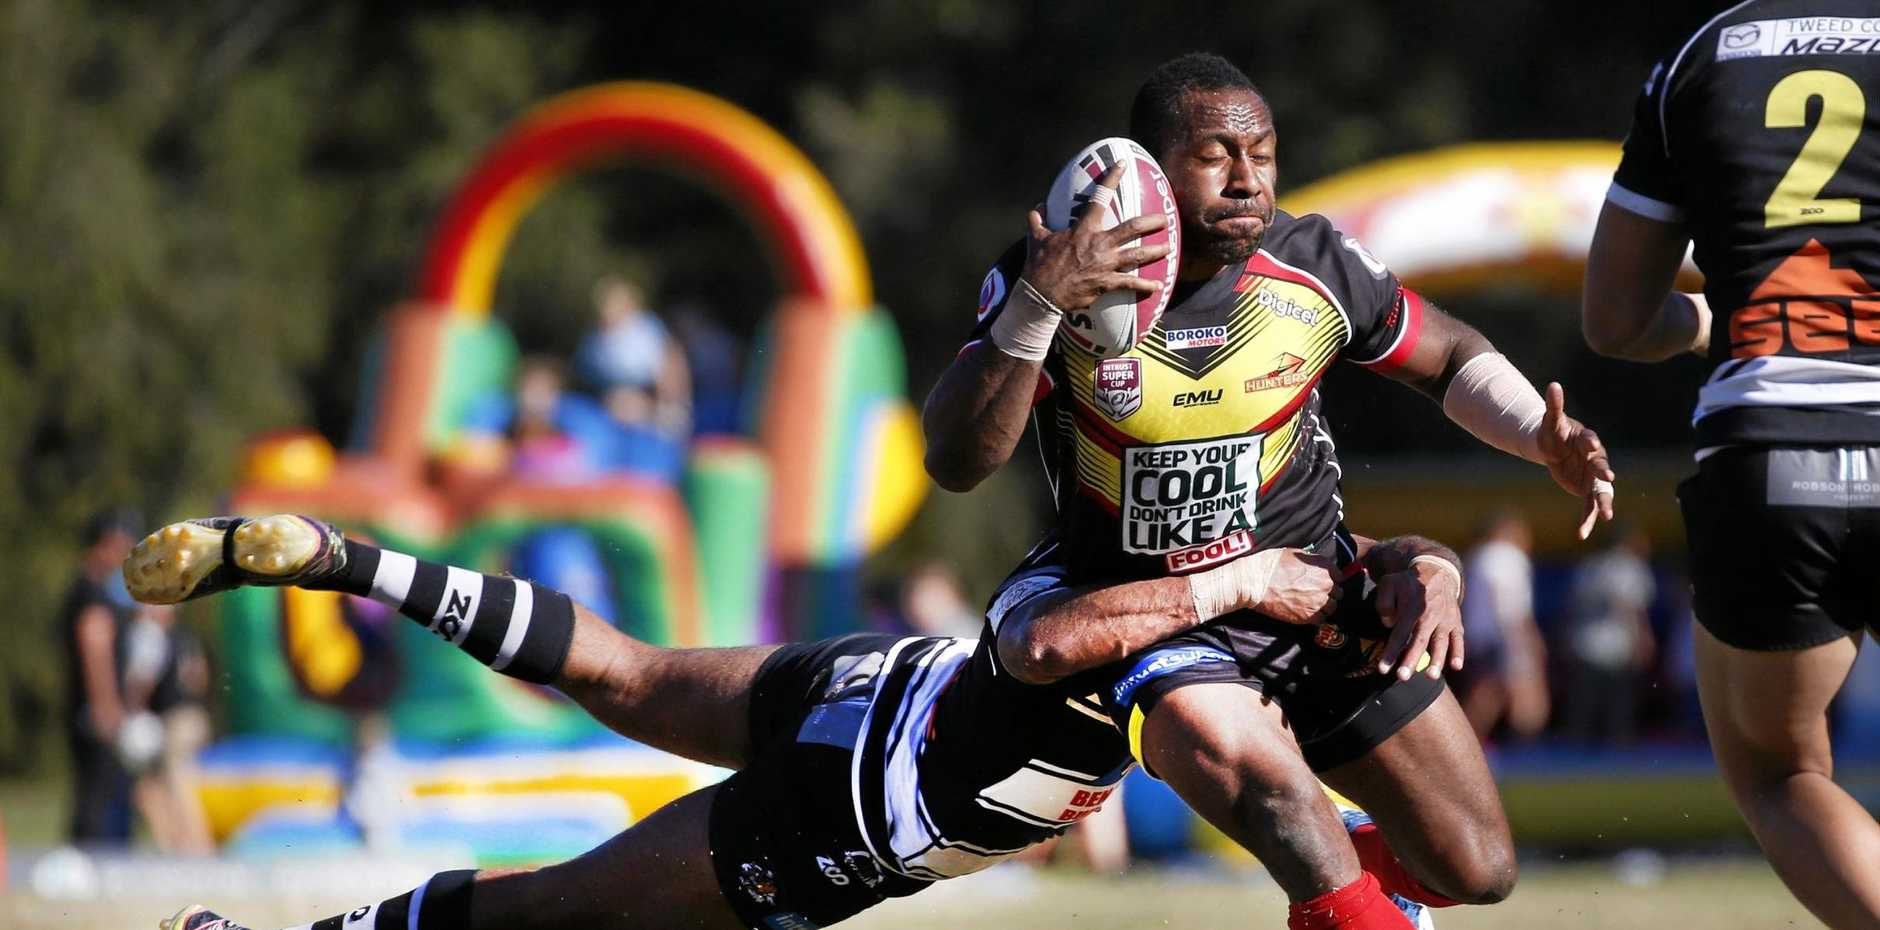 READY TO PLAY: Tweed Seagulls will host the PNG Hunters at their home ground at Piggabeen at West Tweed in the opening round of the Intrust Super Cup on Sunday in what is expected to be a free flowing clash.